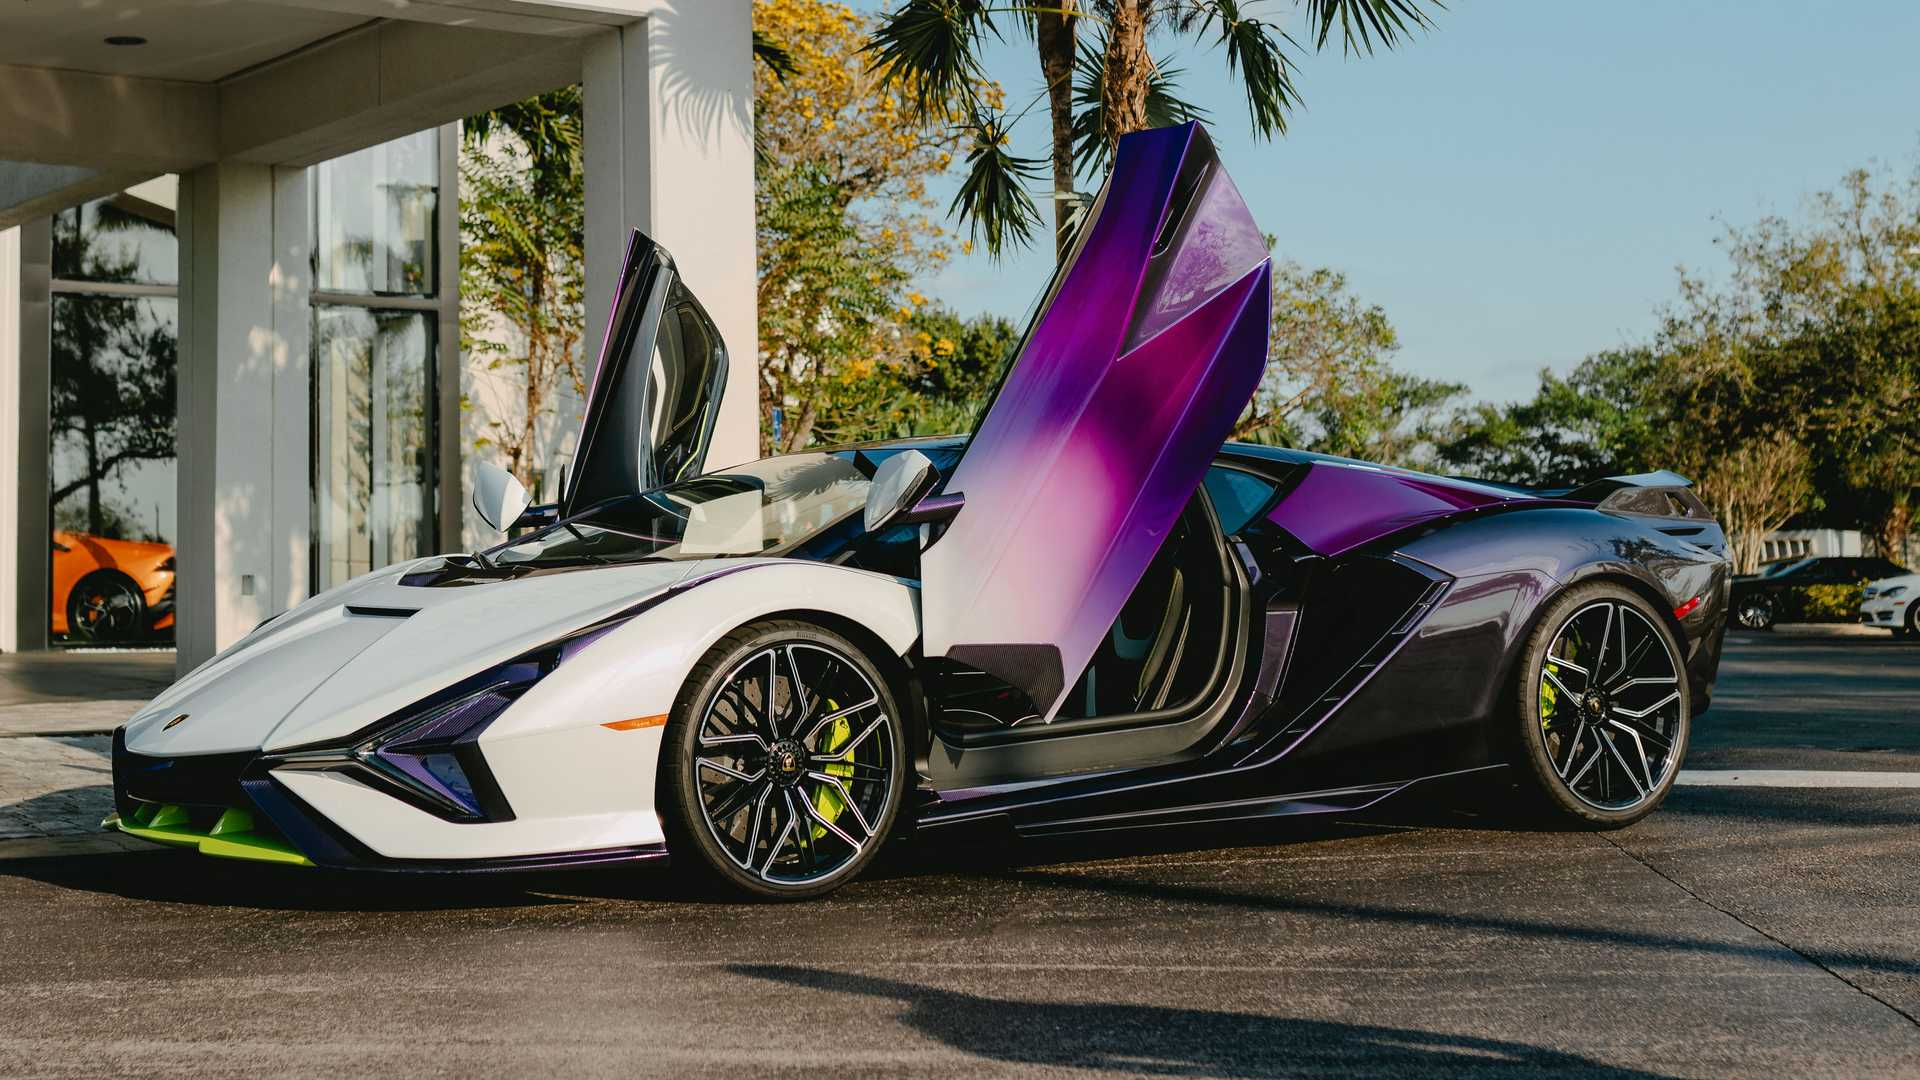 Lamborghini Sian In Purple, Green, And White Side Low Door Up Photo By Juan Pablo Saenz